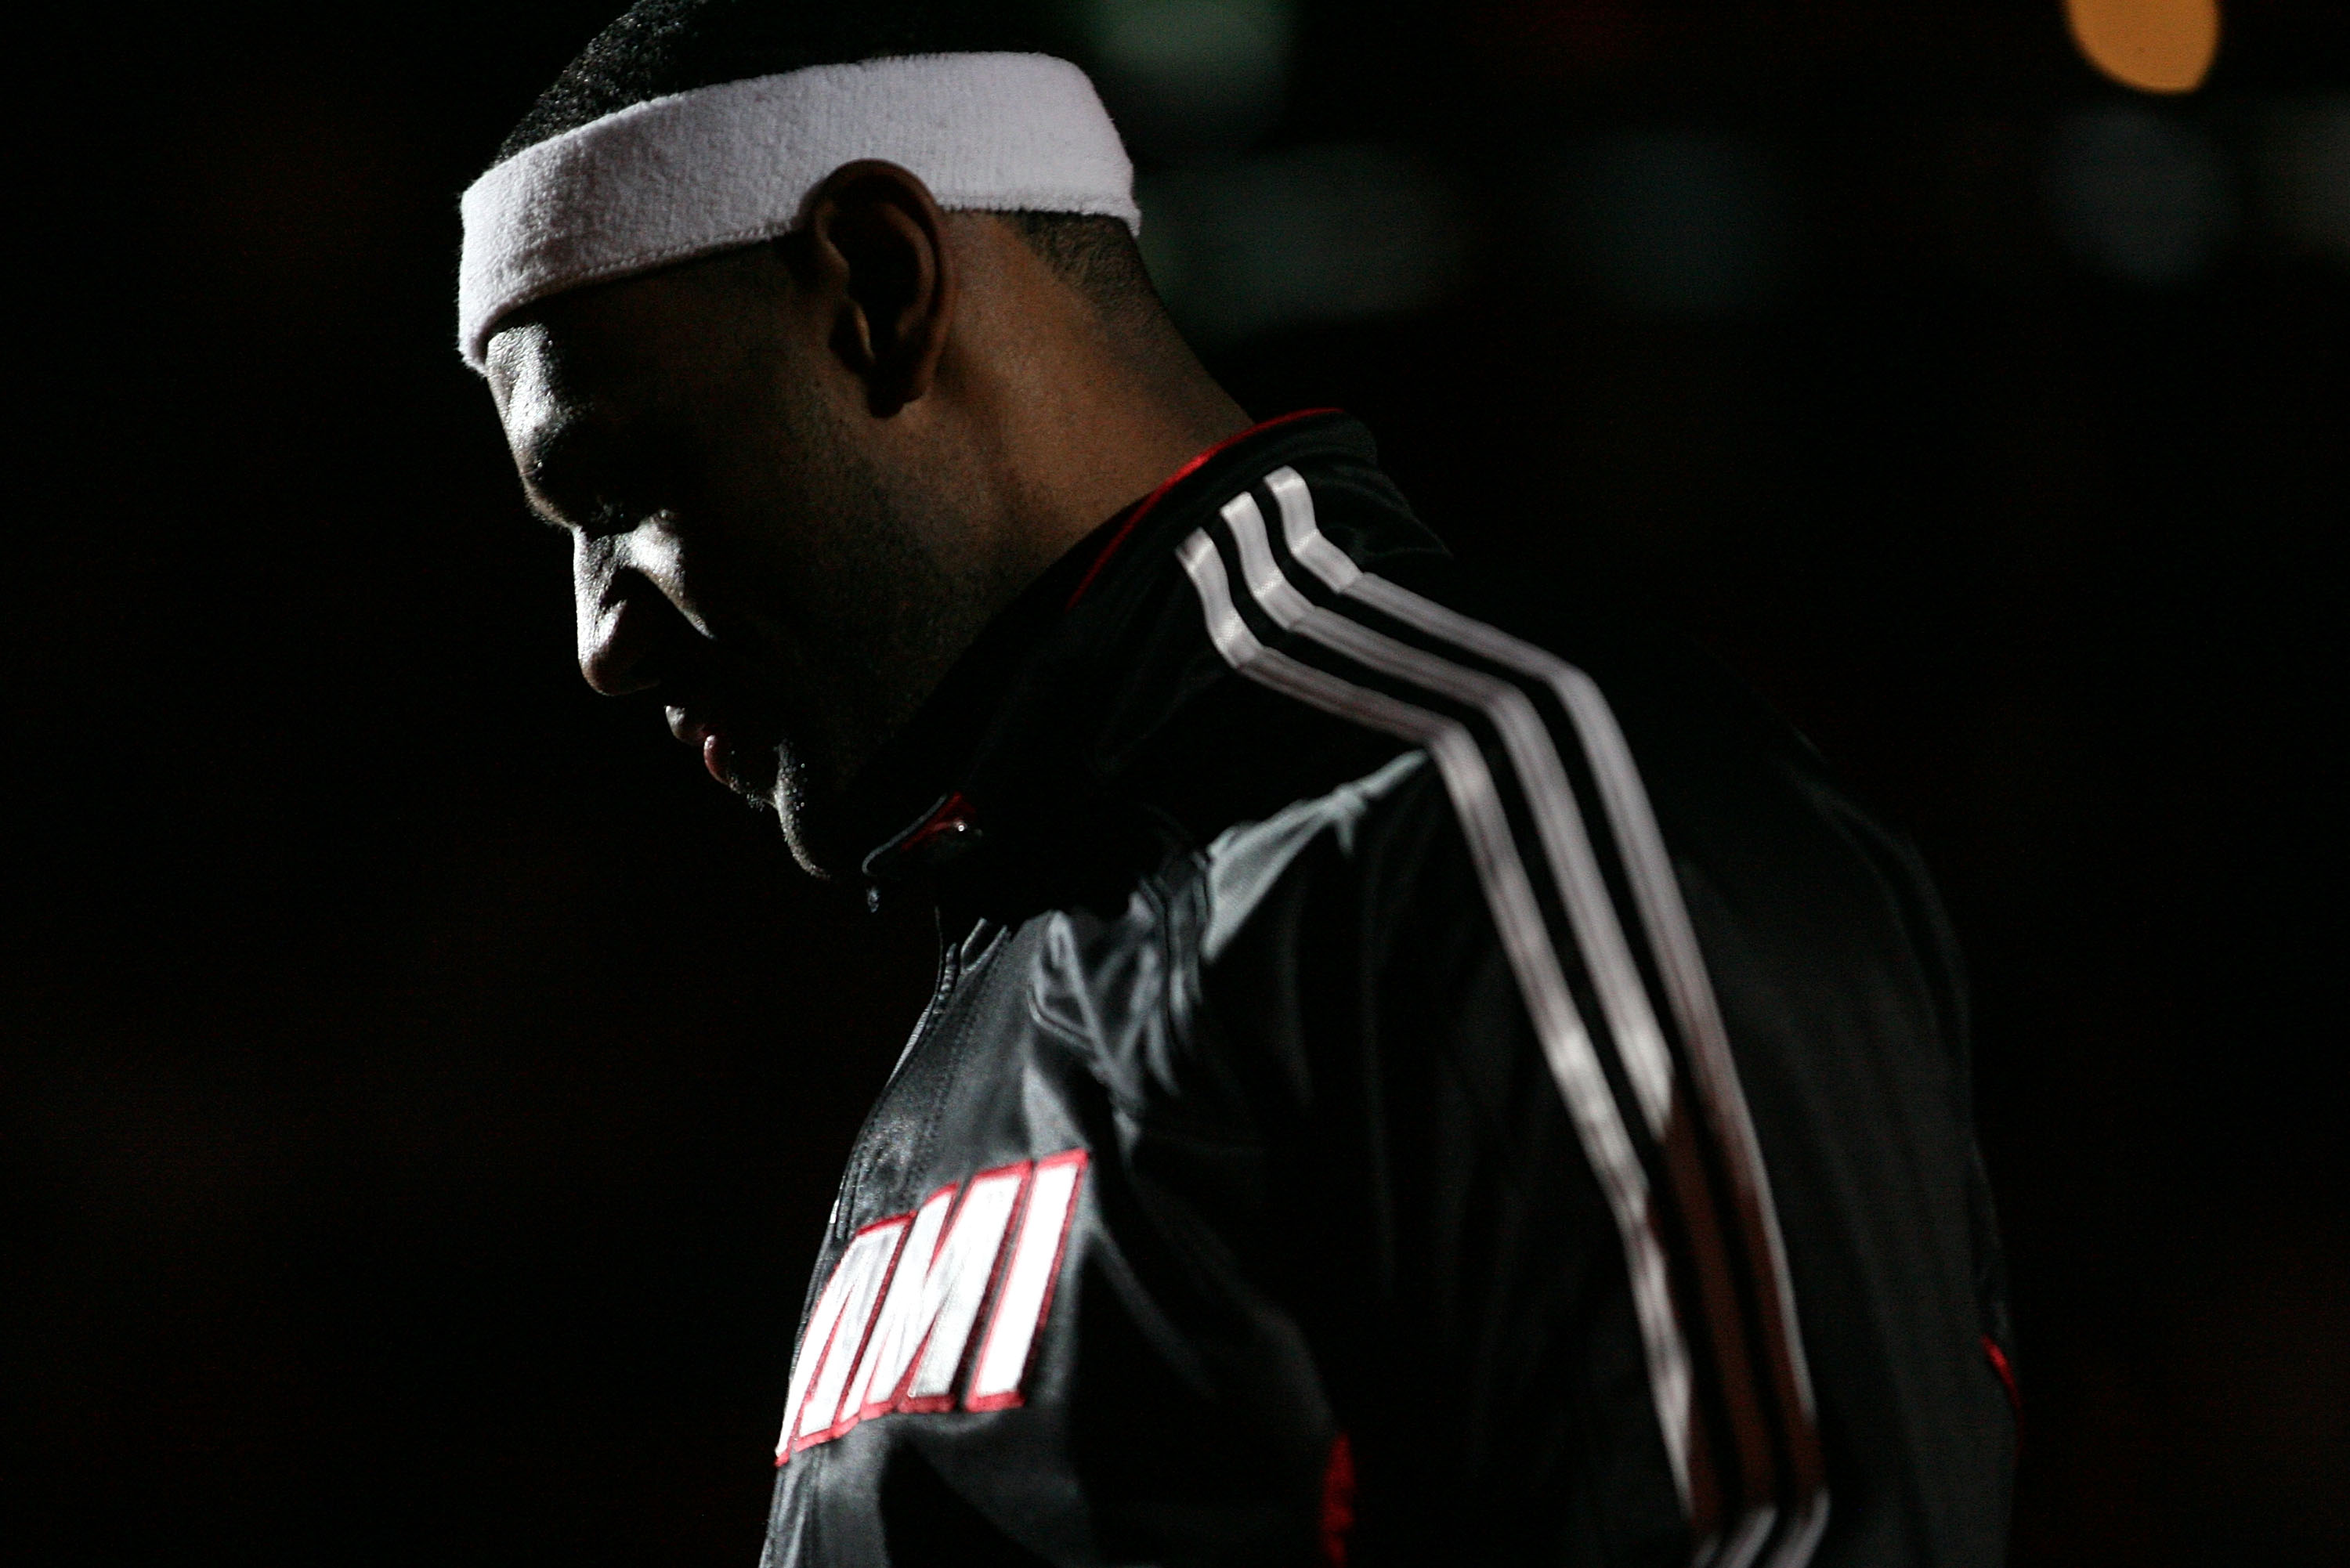 MIAMI - DECEMBER 28:  LeBron James #6 of the Miami Heat is introduced before NBA action against the New York Knicks at American Airlines Arena on December 28, 2010 in Miami, Florida.  (Photo by Marc Serota/Getty Images)